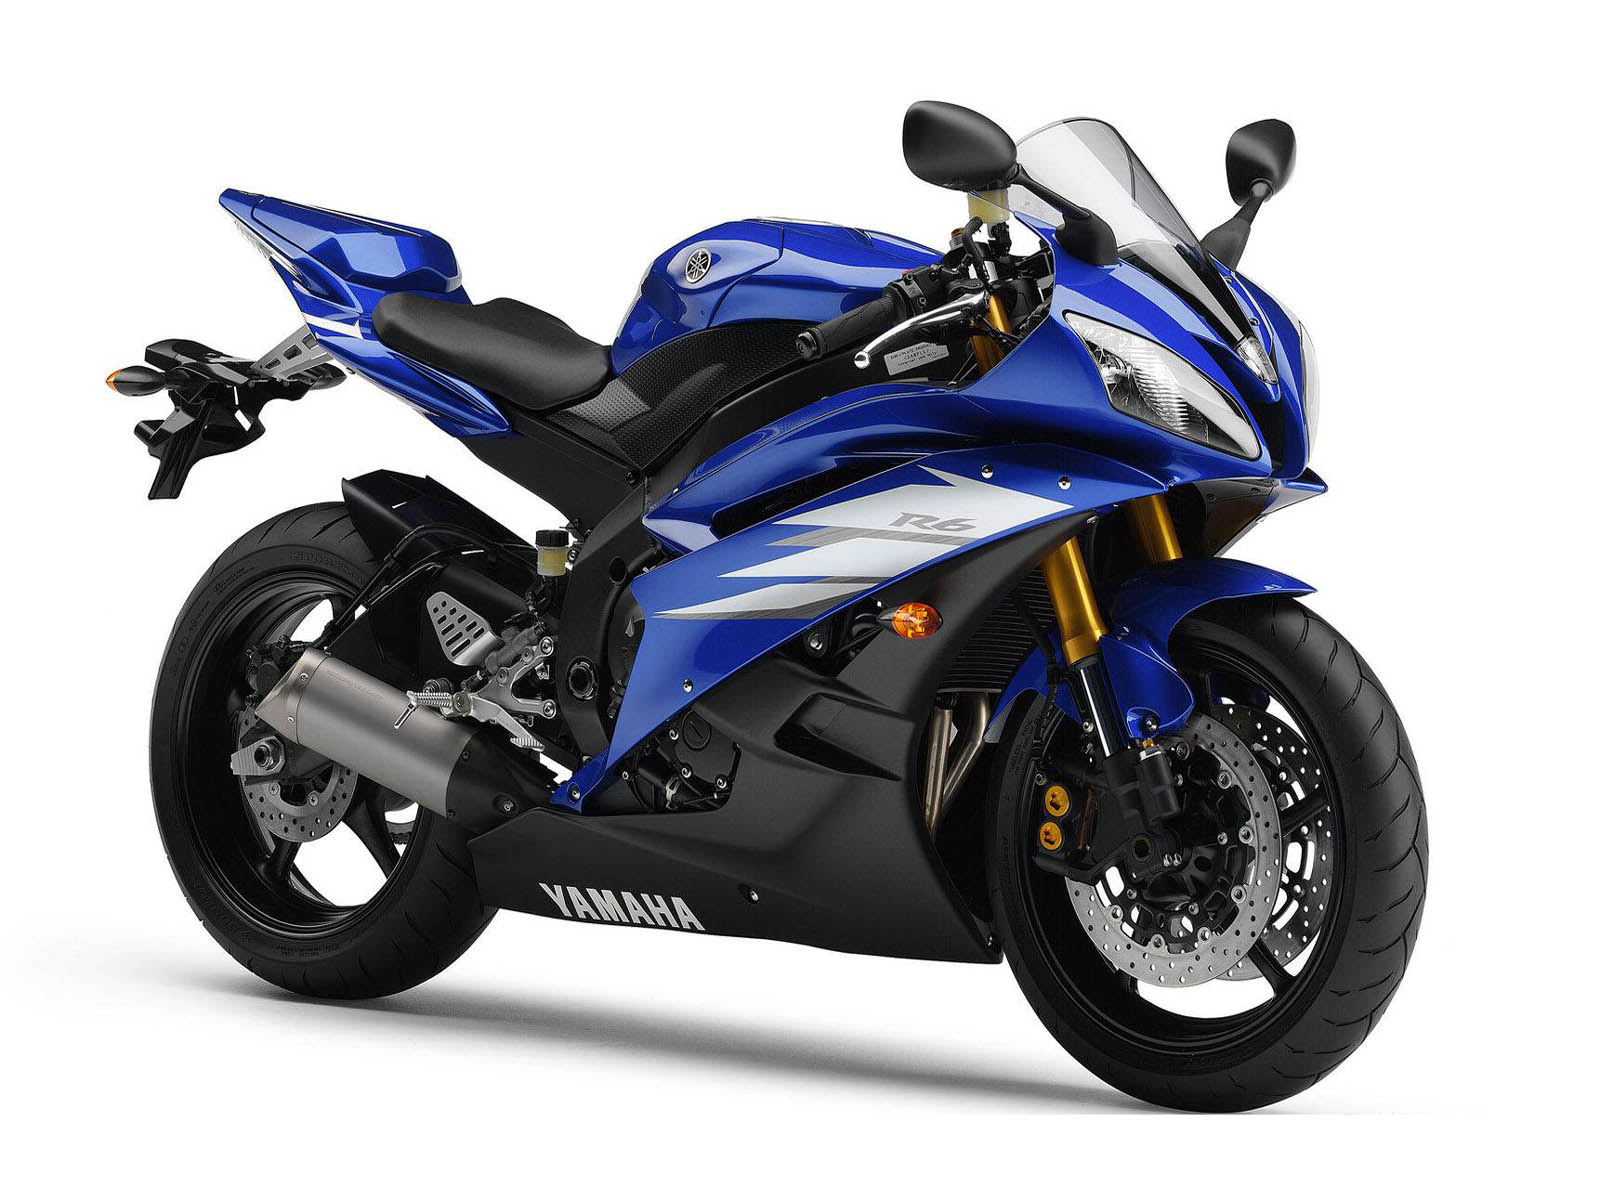 Tag Yamaha R6 Bike Wallpapers BackgroundsPhotos Images and 1600x1200